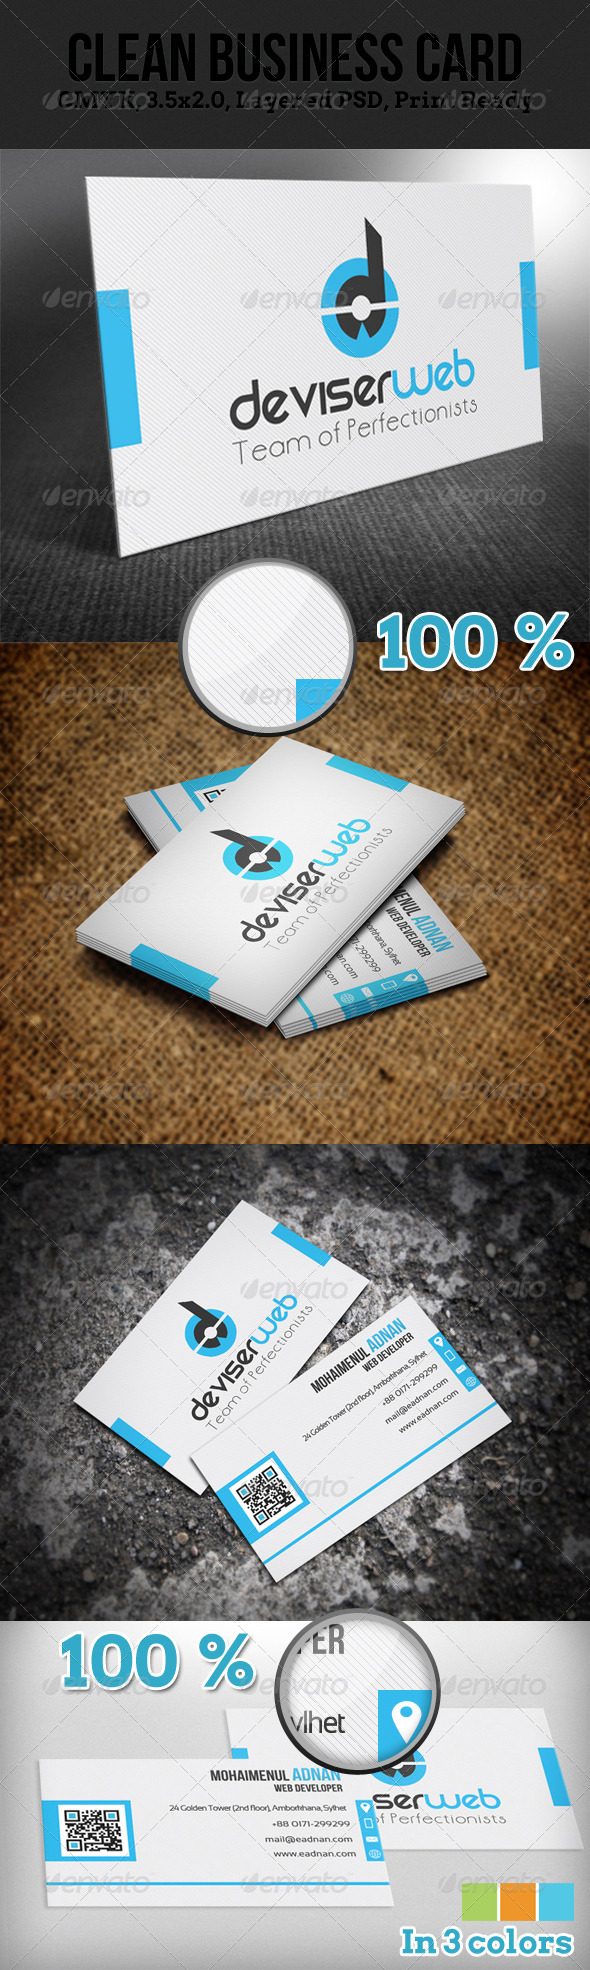 GraphicRiver Clean Business Card 4380670